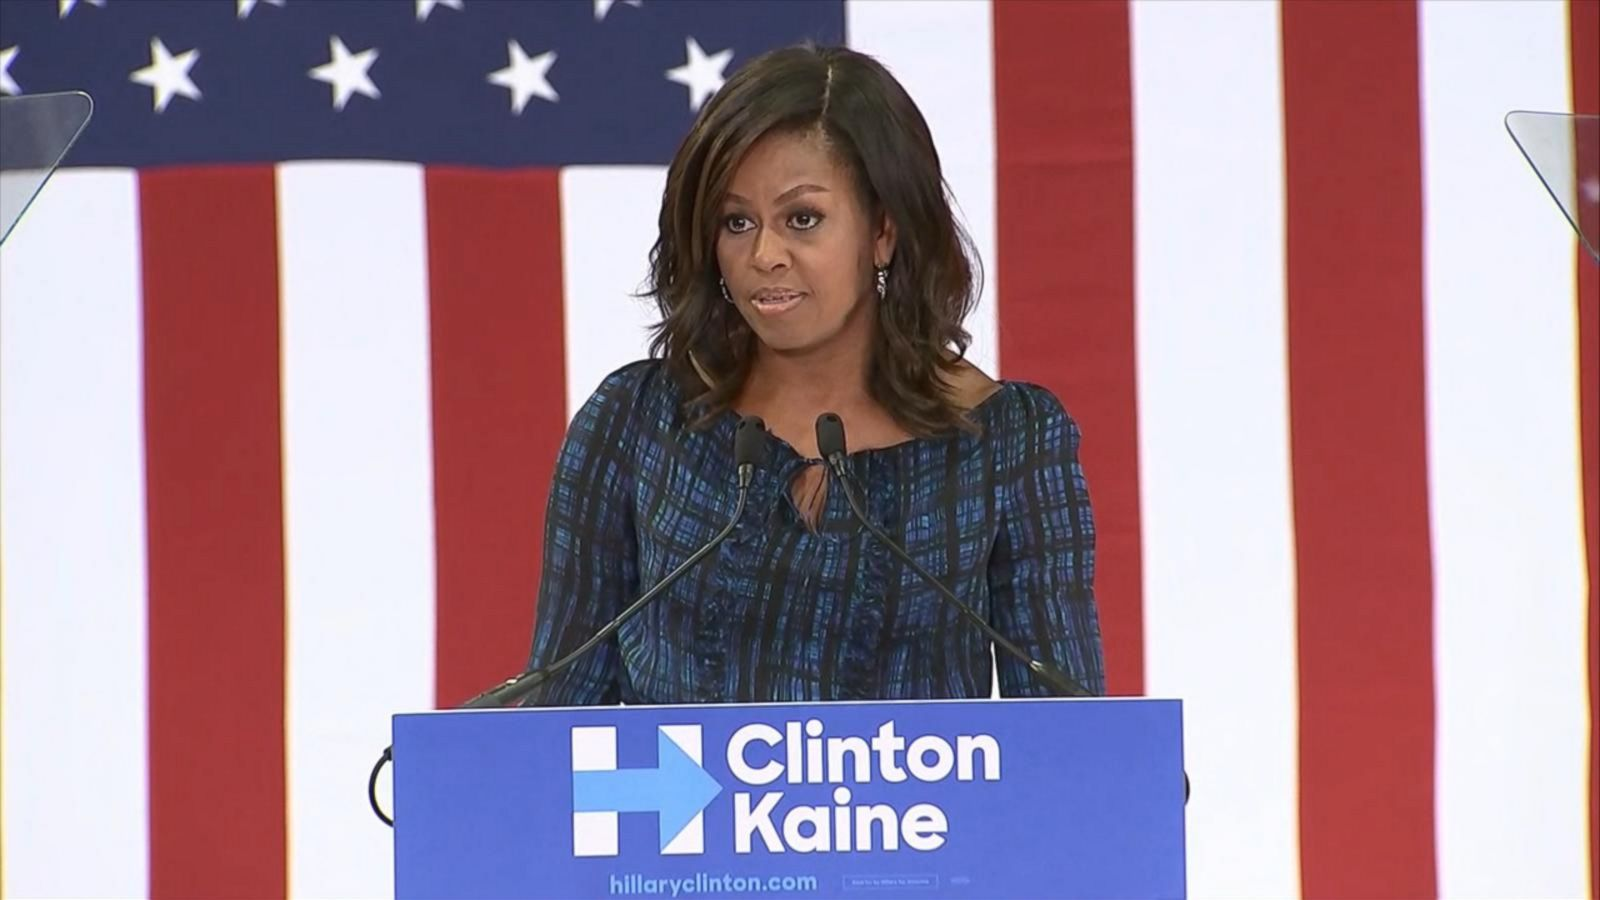 The first lady returns to the campaign trail for the Democratic presidential nominee.